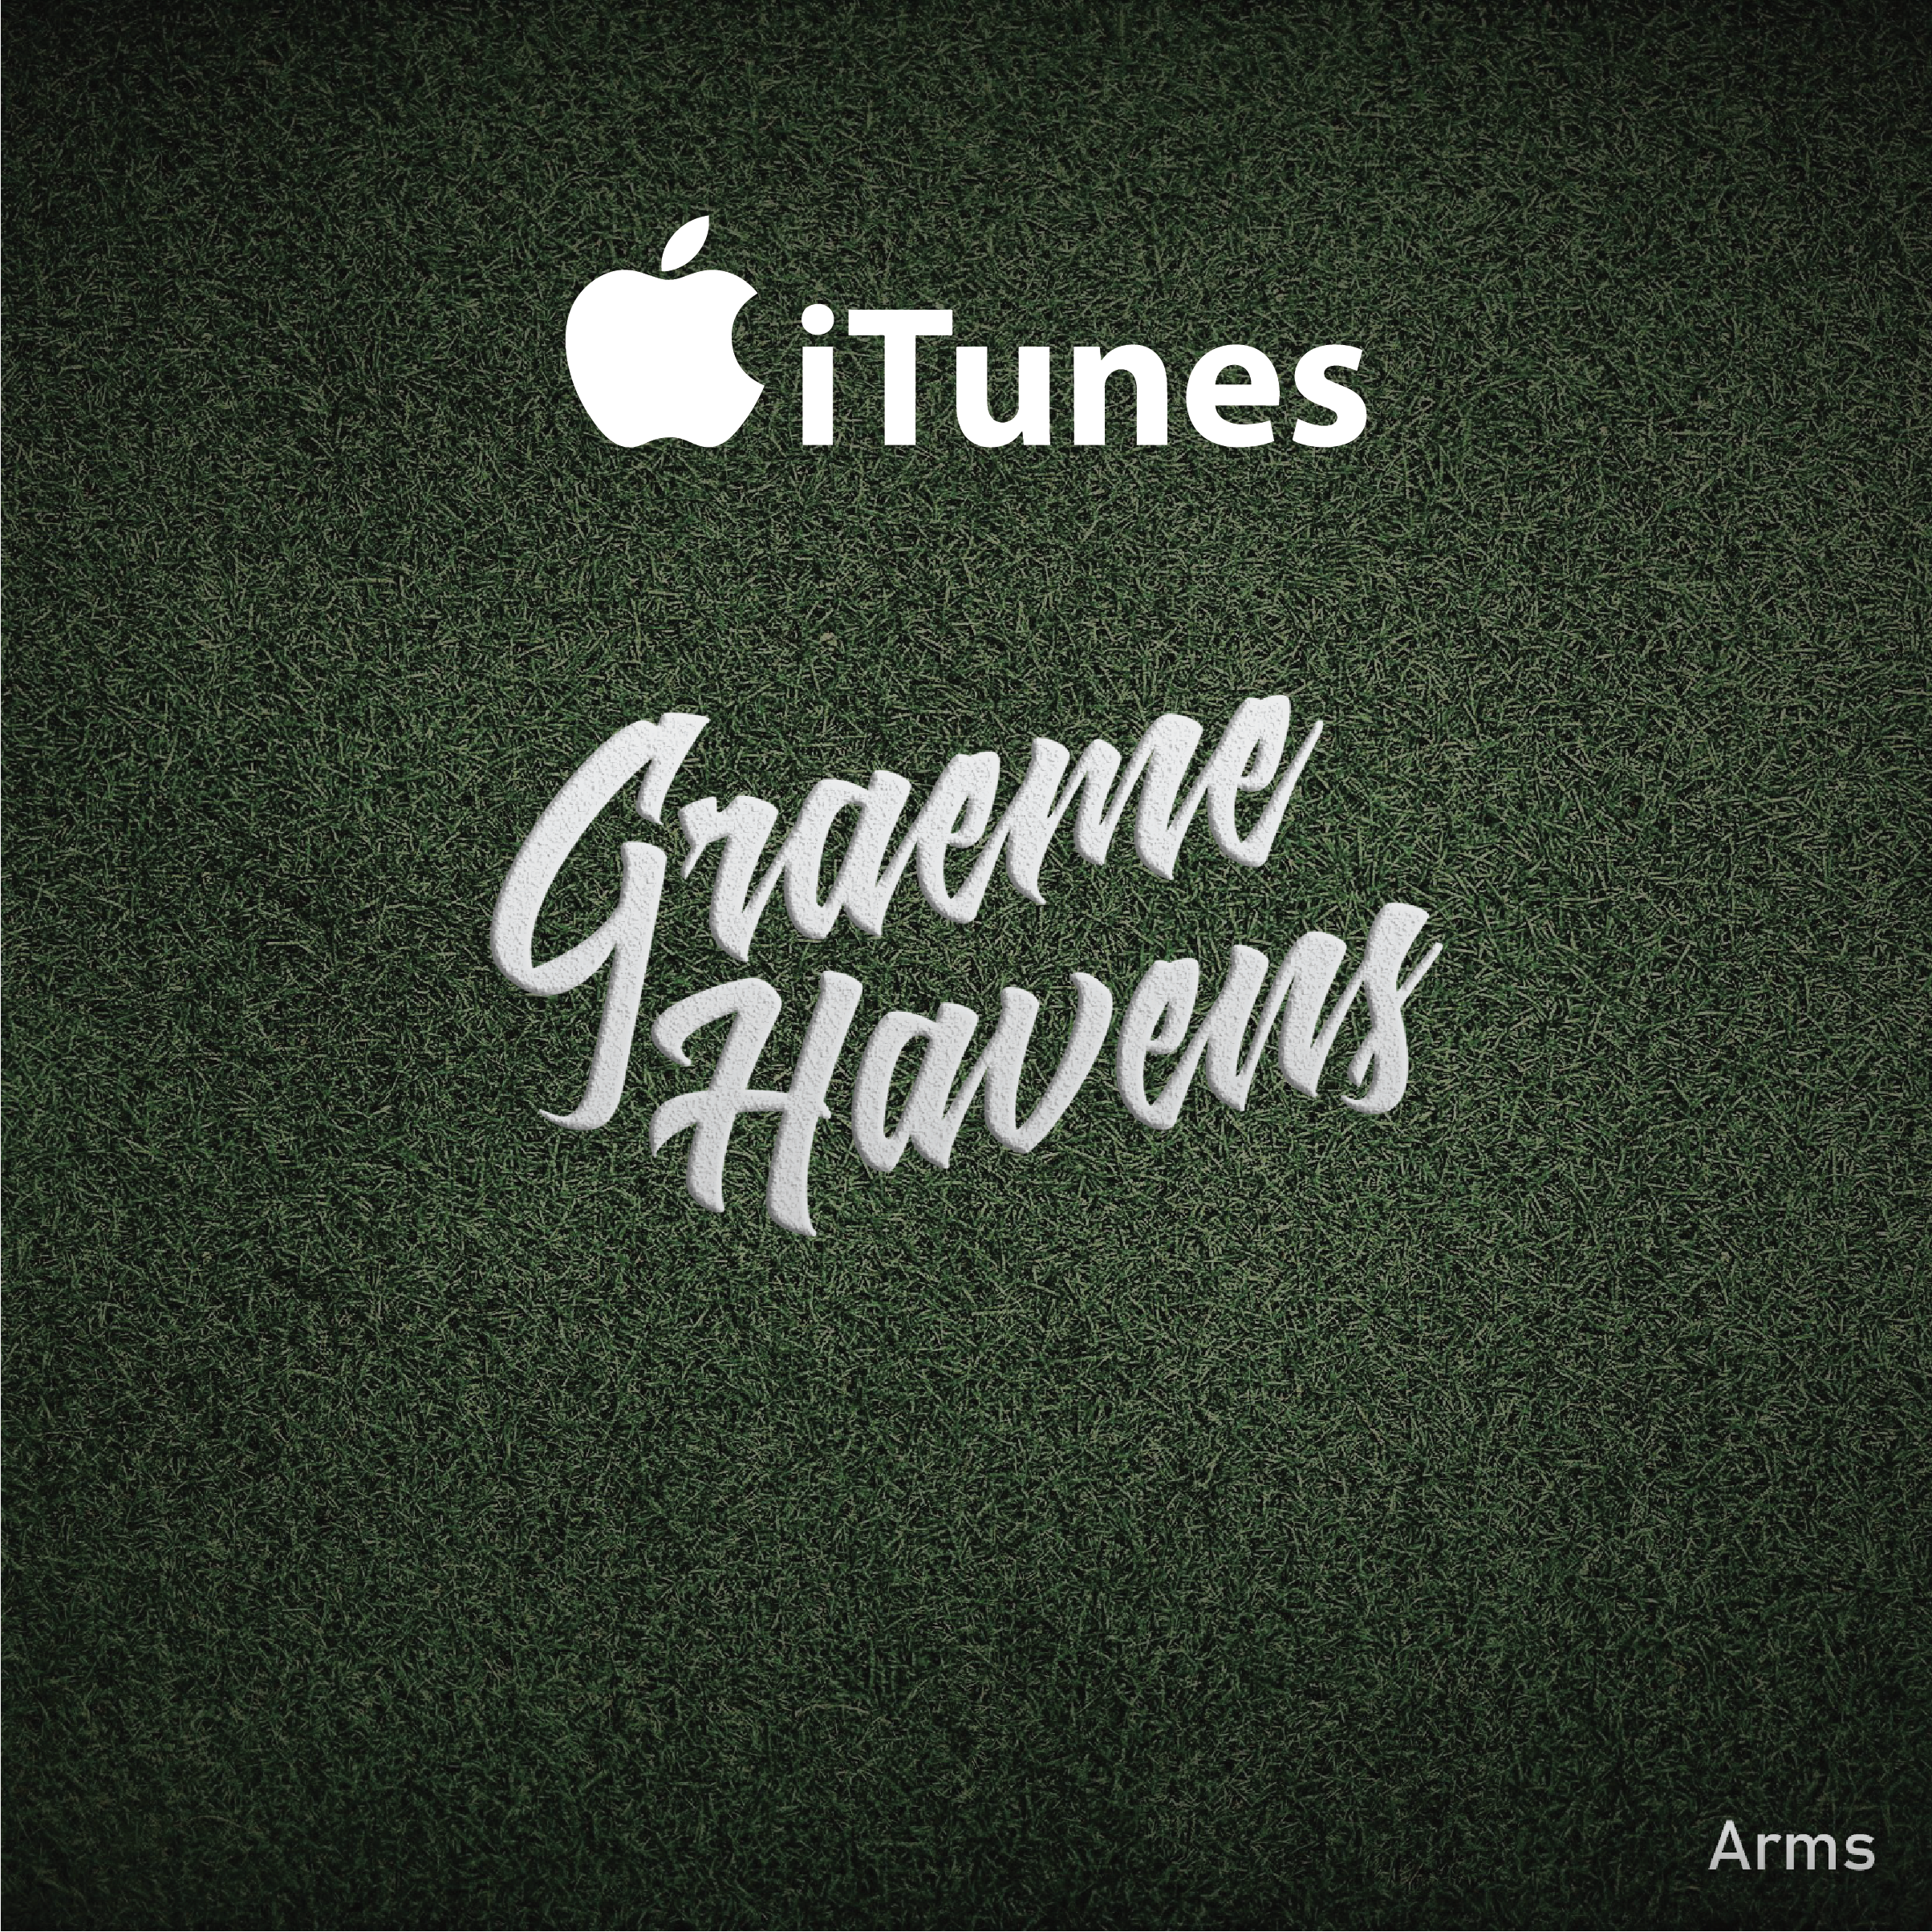 Arms itunes link